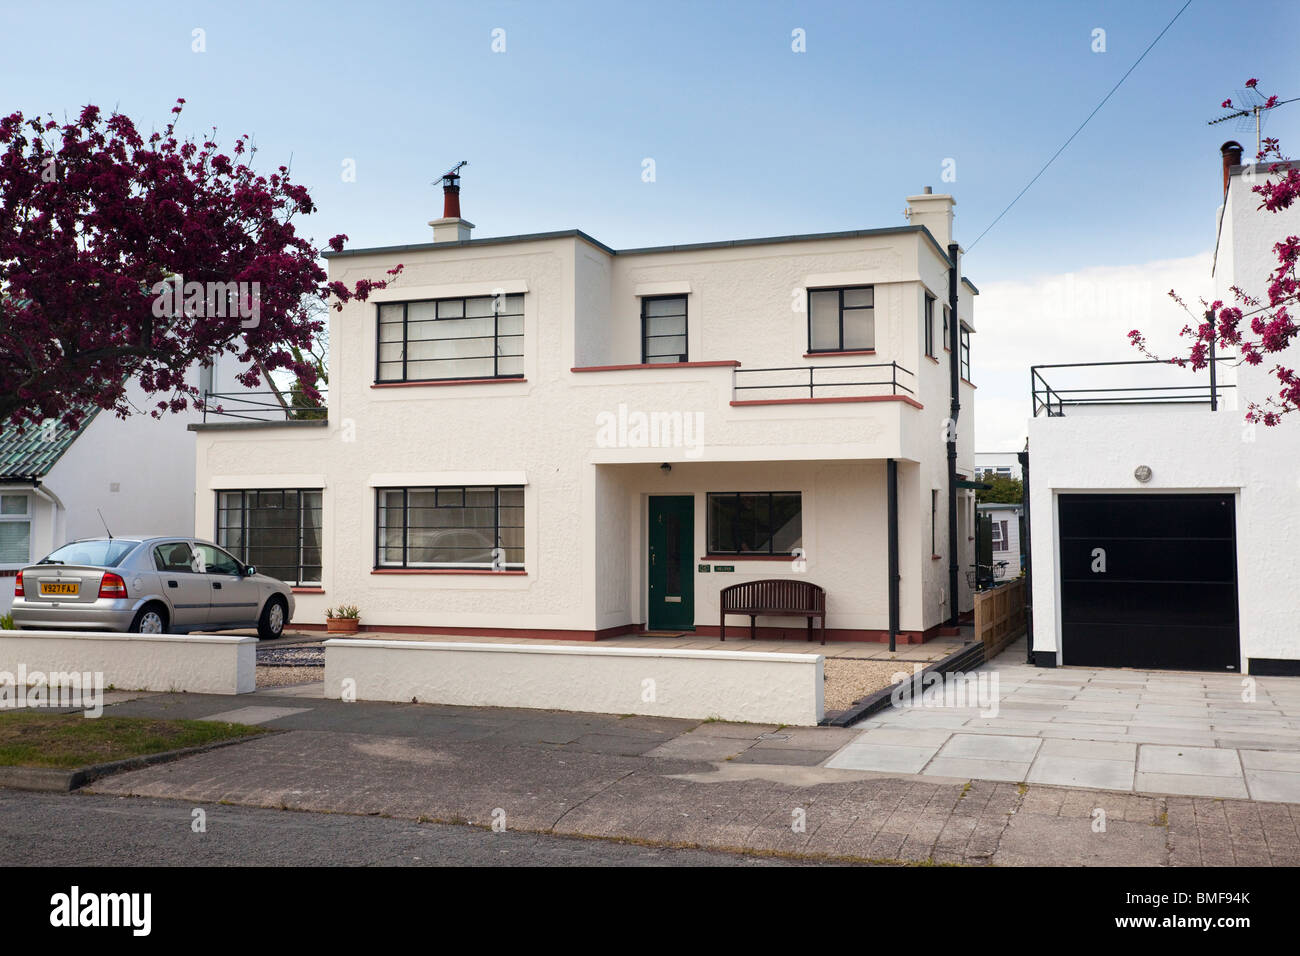 Cape cod style home further art deco style house at frinton on sea